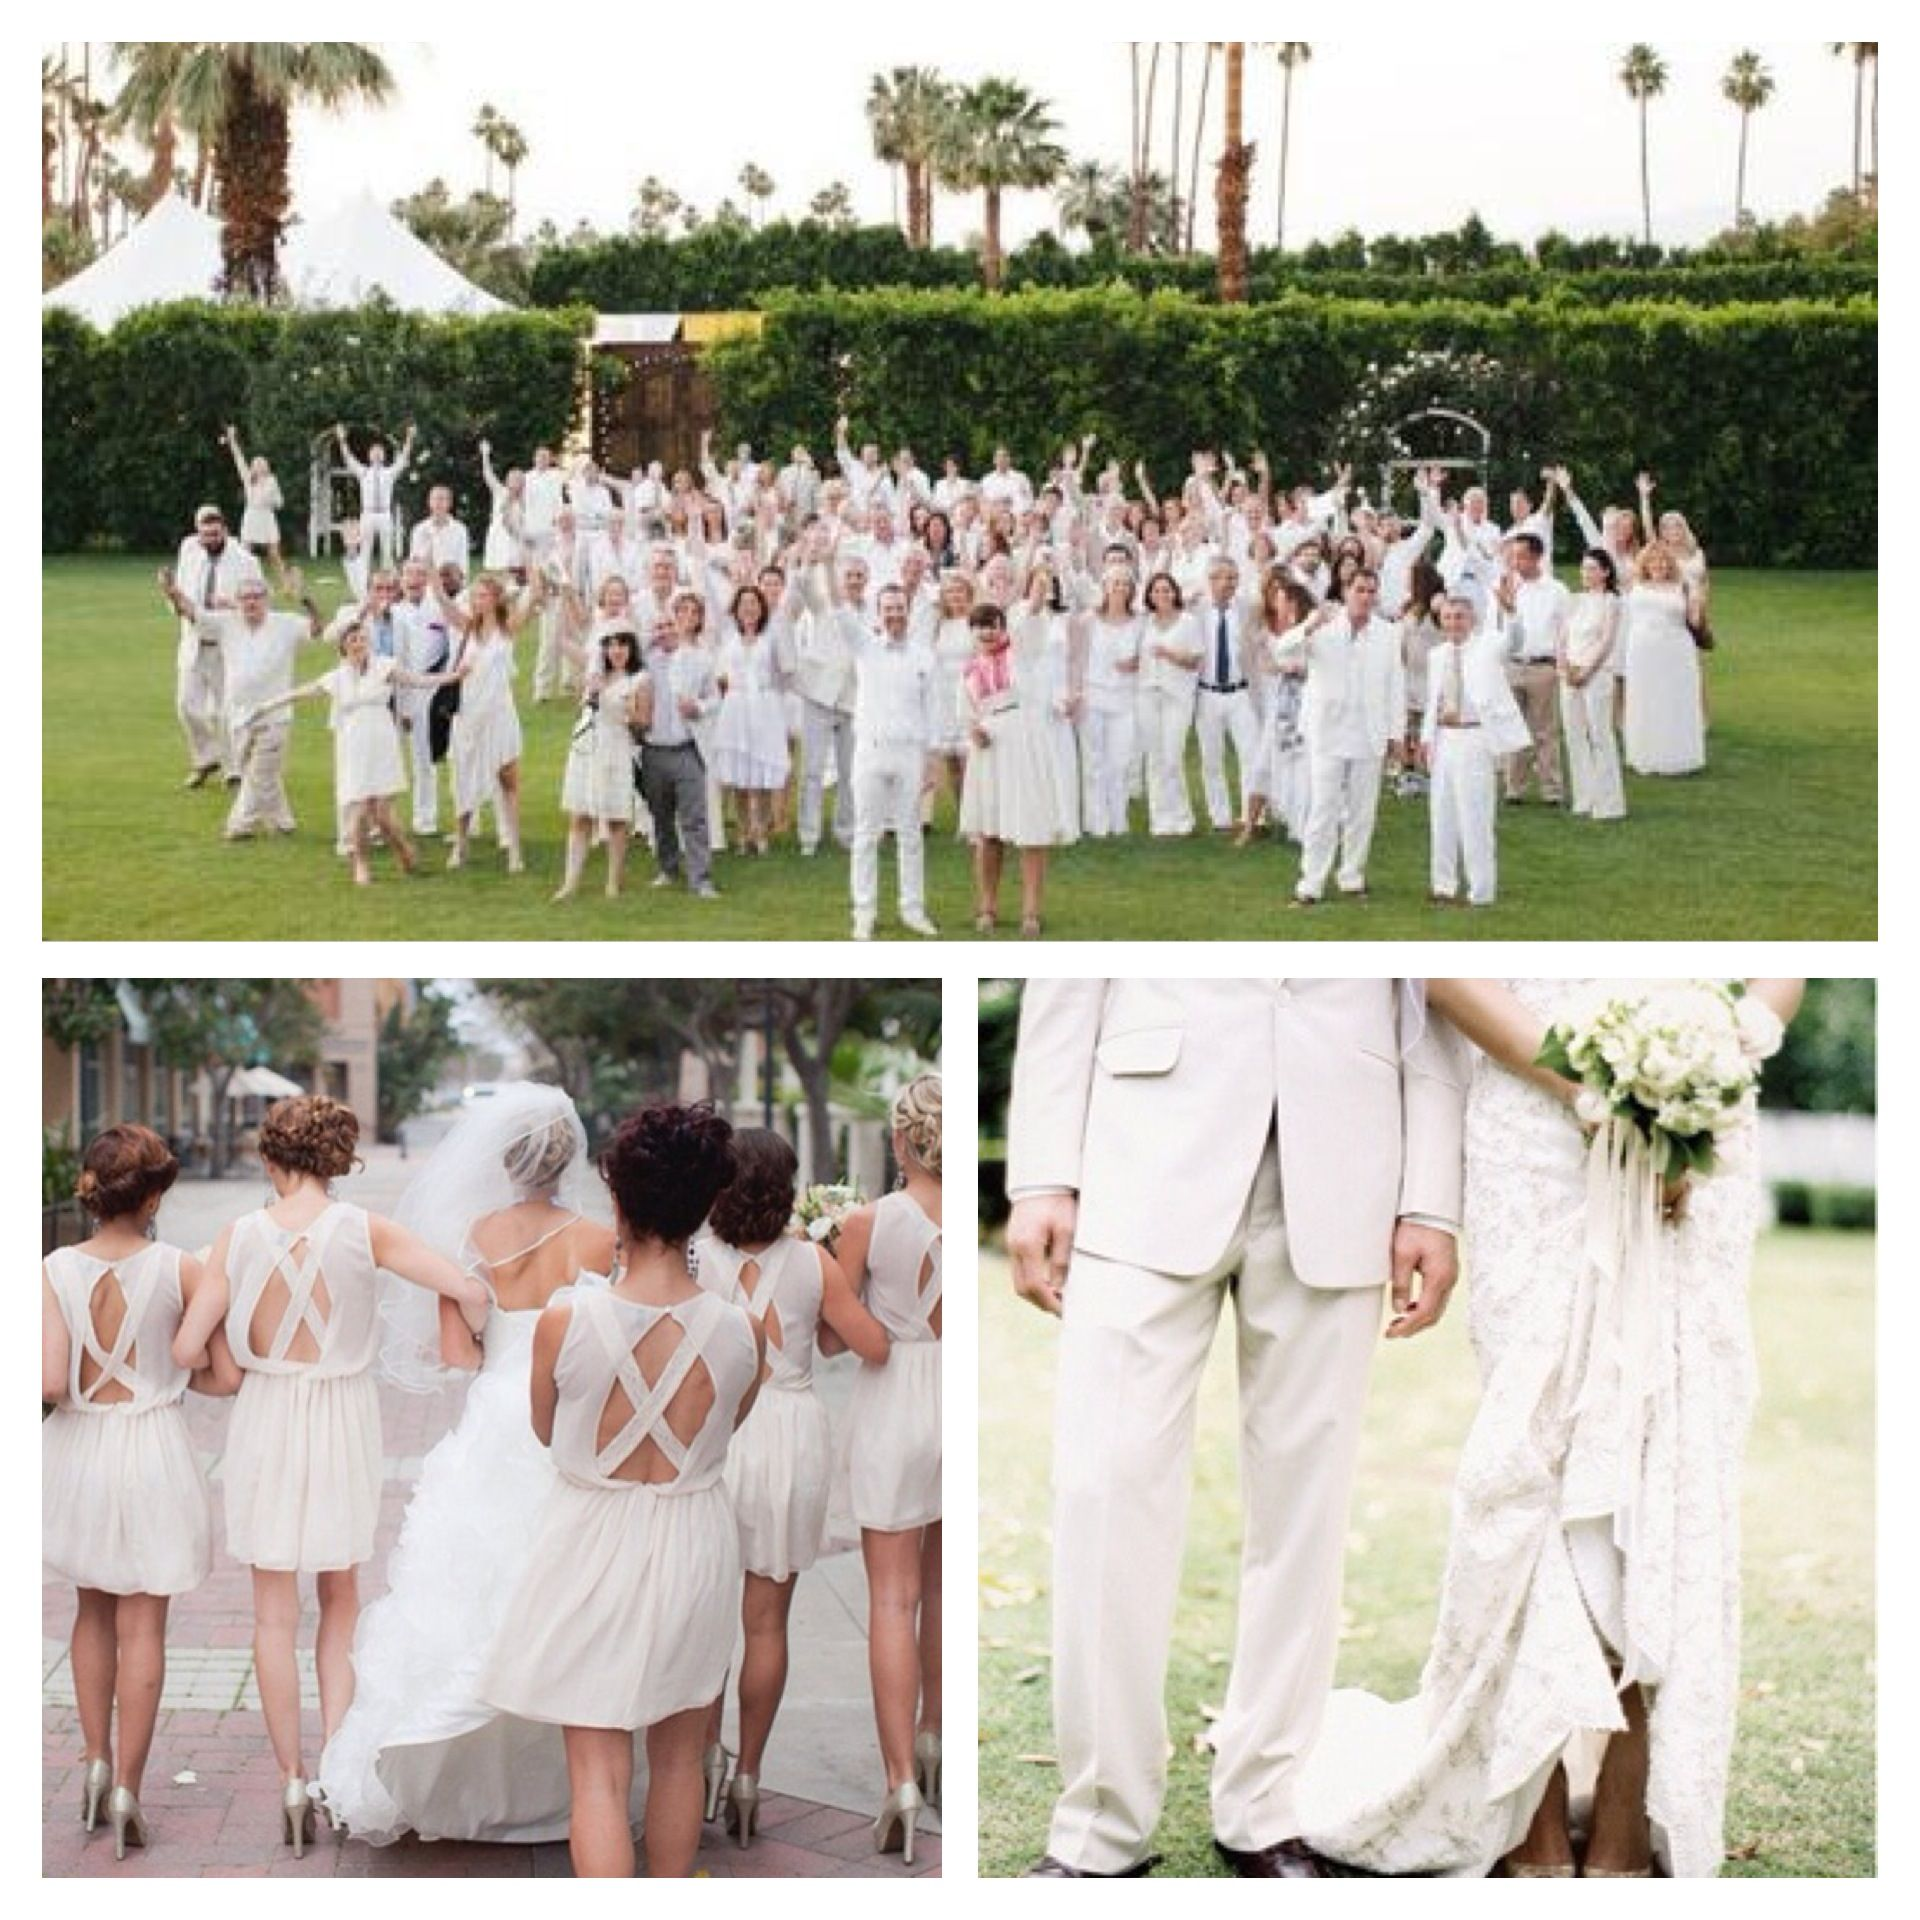 Wedding Guests All In White